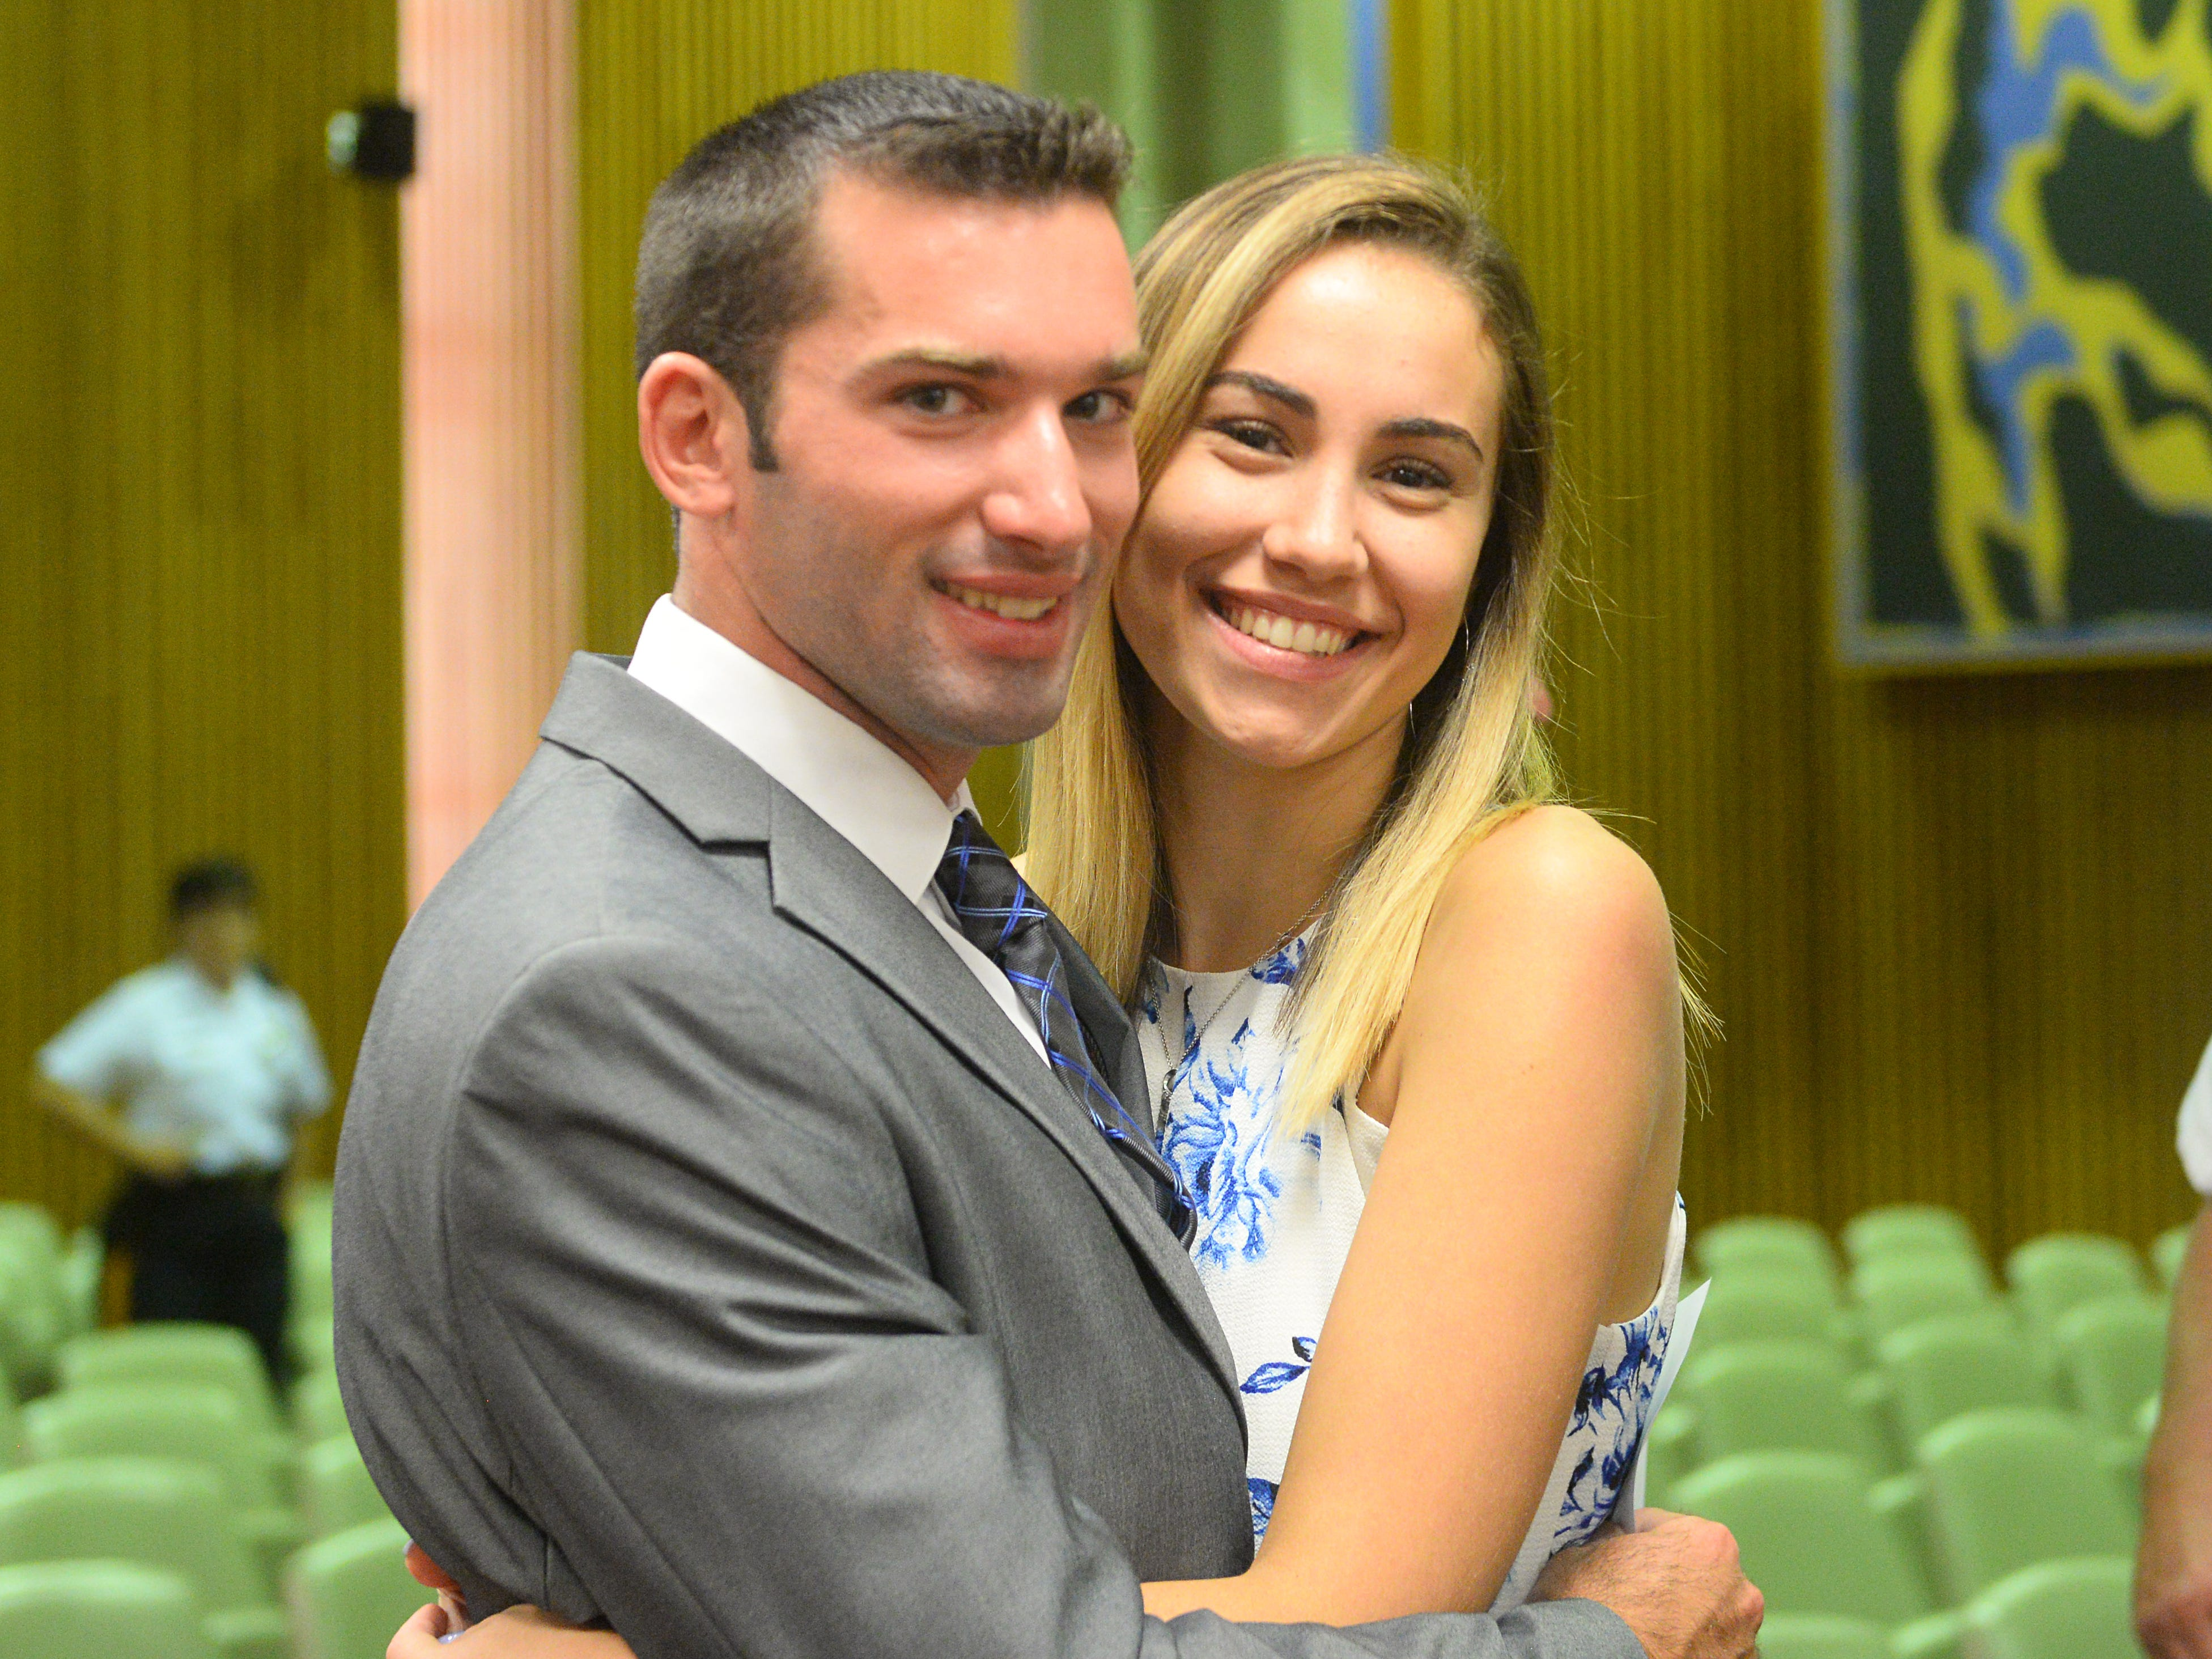 Daniel Miller Jr., 23, celebrates with his girlfriend, Nicole Pooley, after being sworn in as a Vineland police recruit at Vineland City Hall on Thursday, August 2.